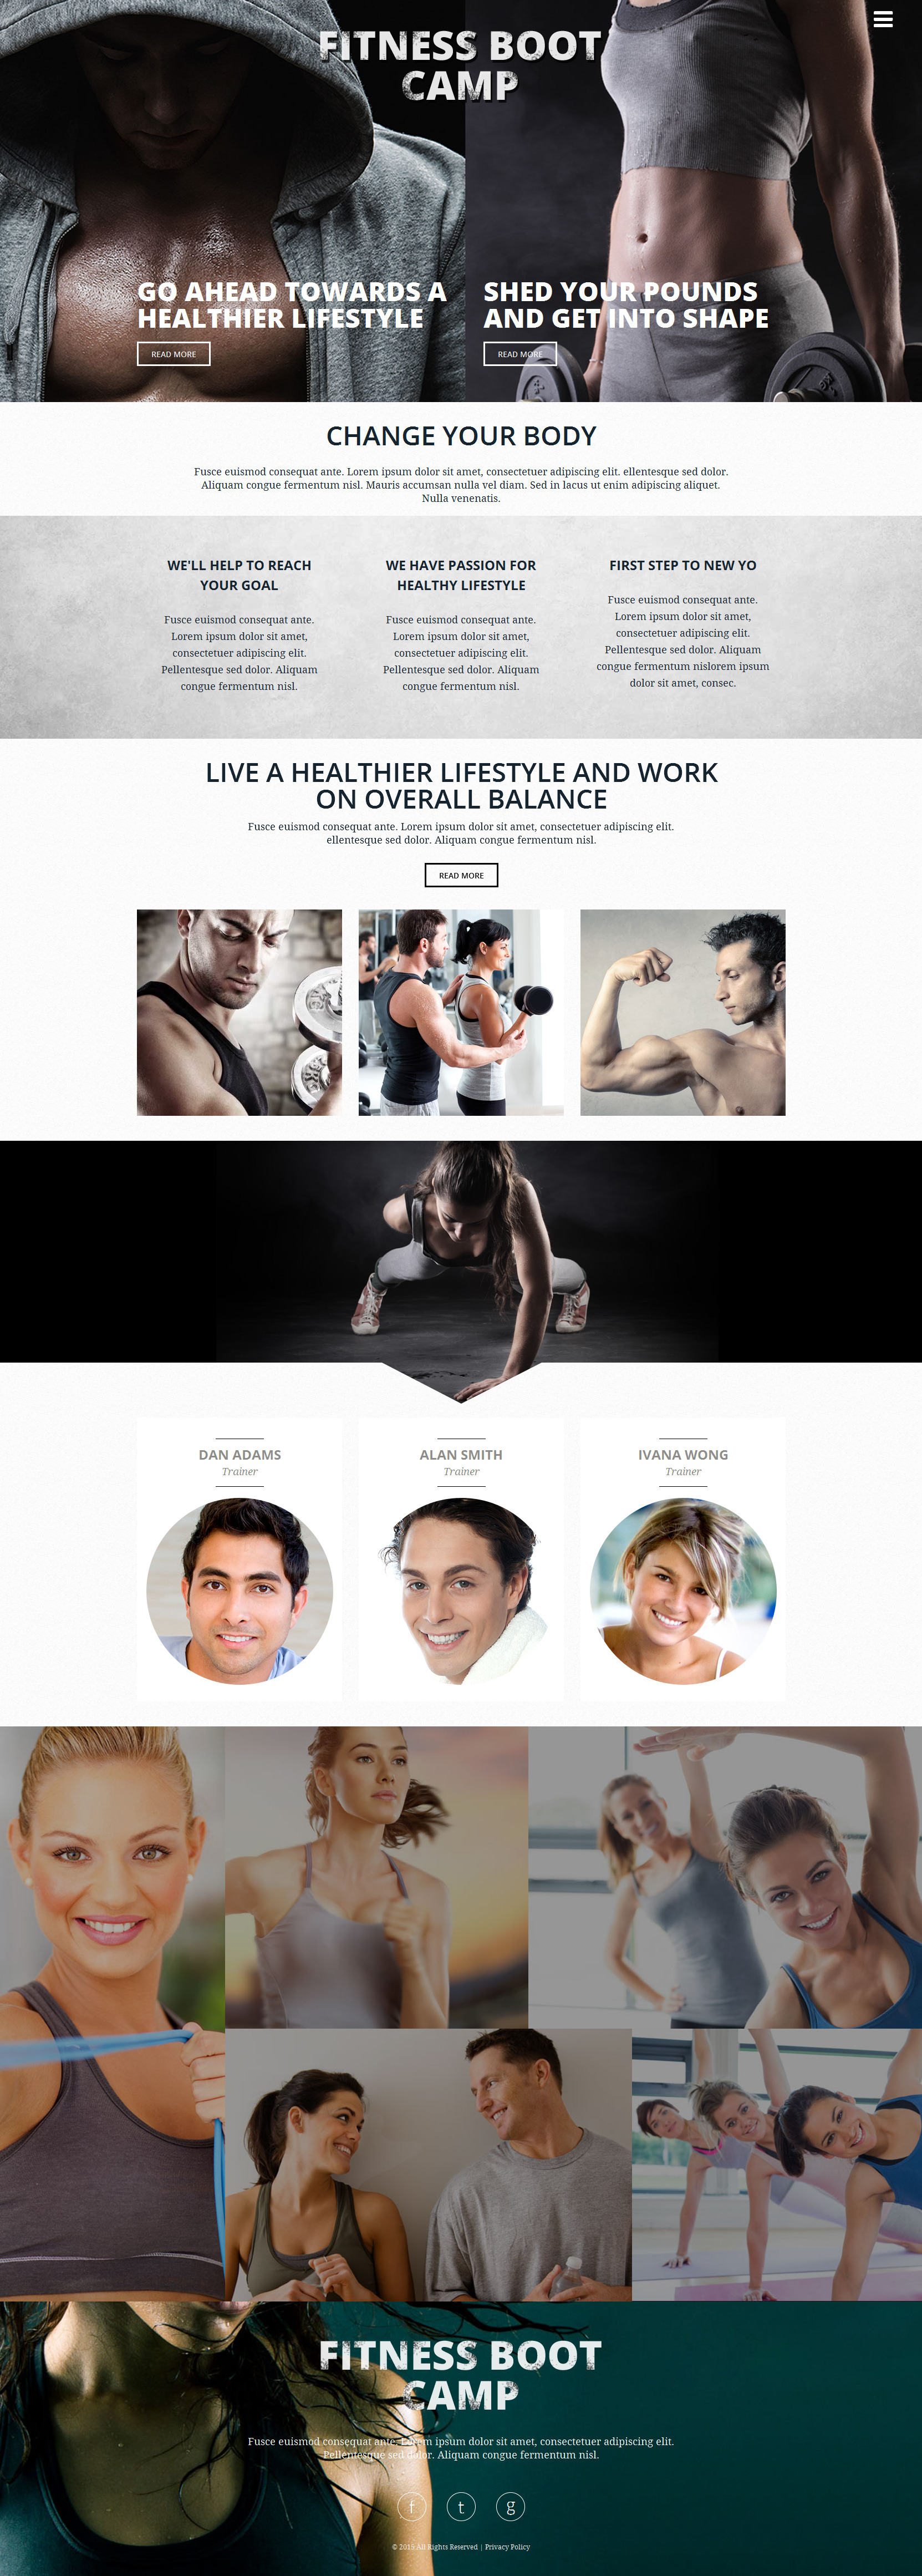 """Club de fitness"" modèle web adaptatif #53542 - screenshot"